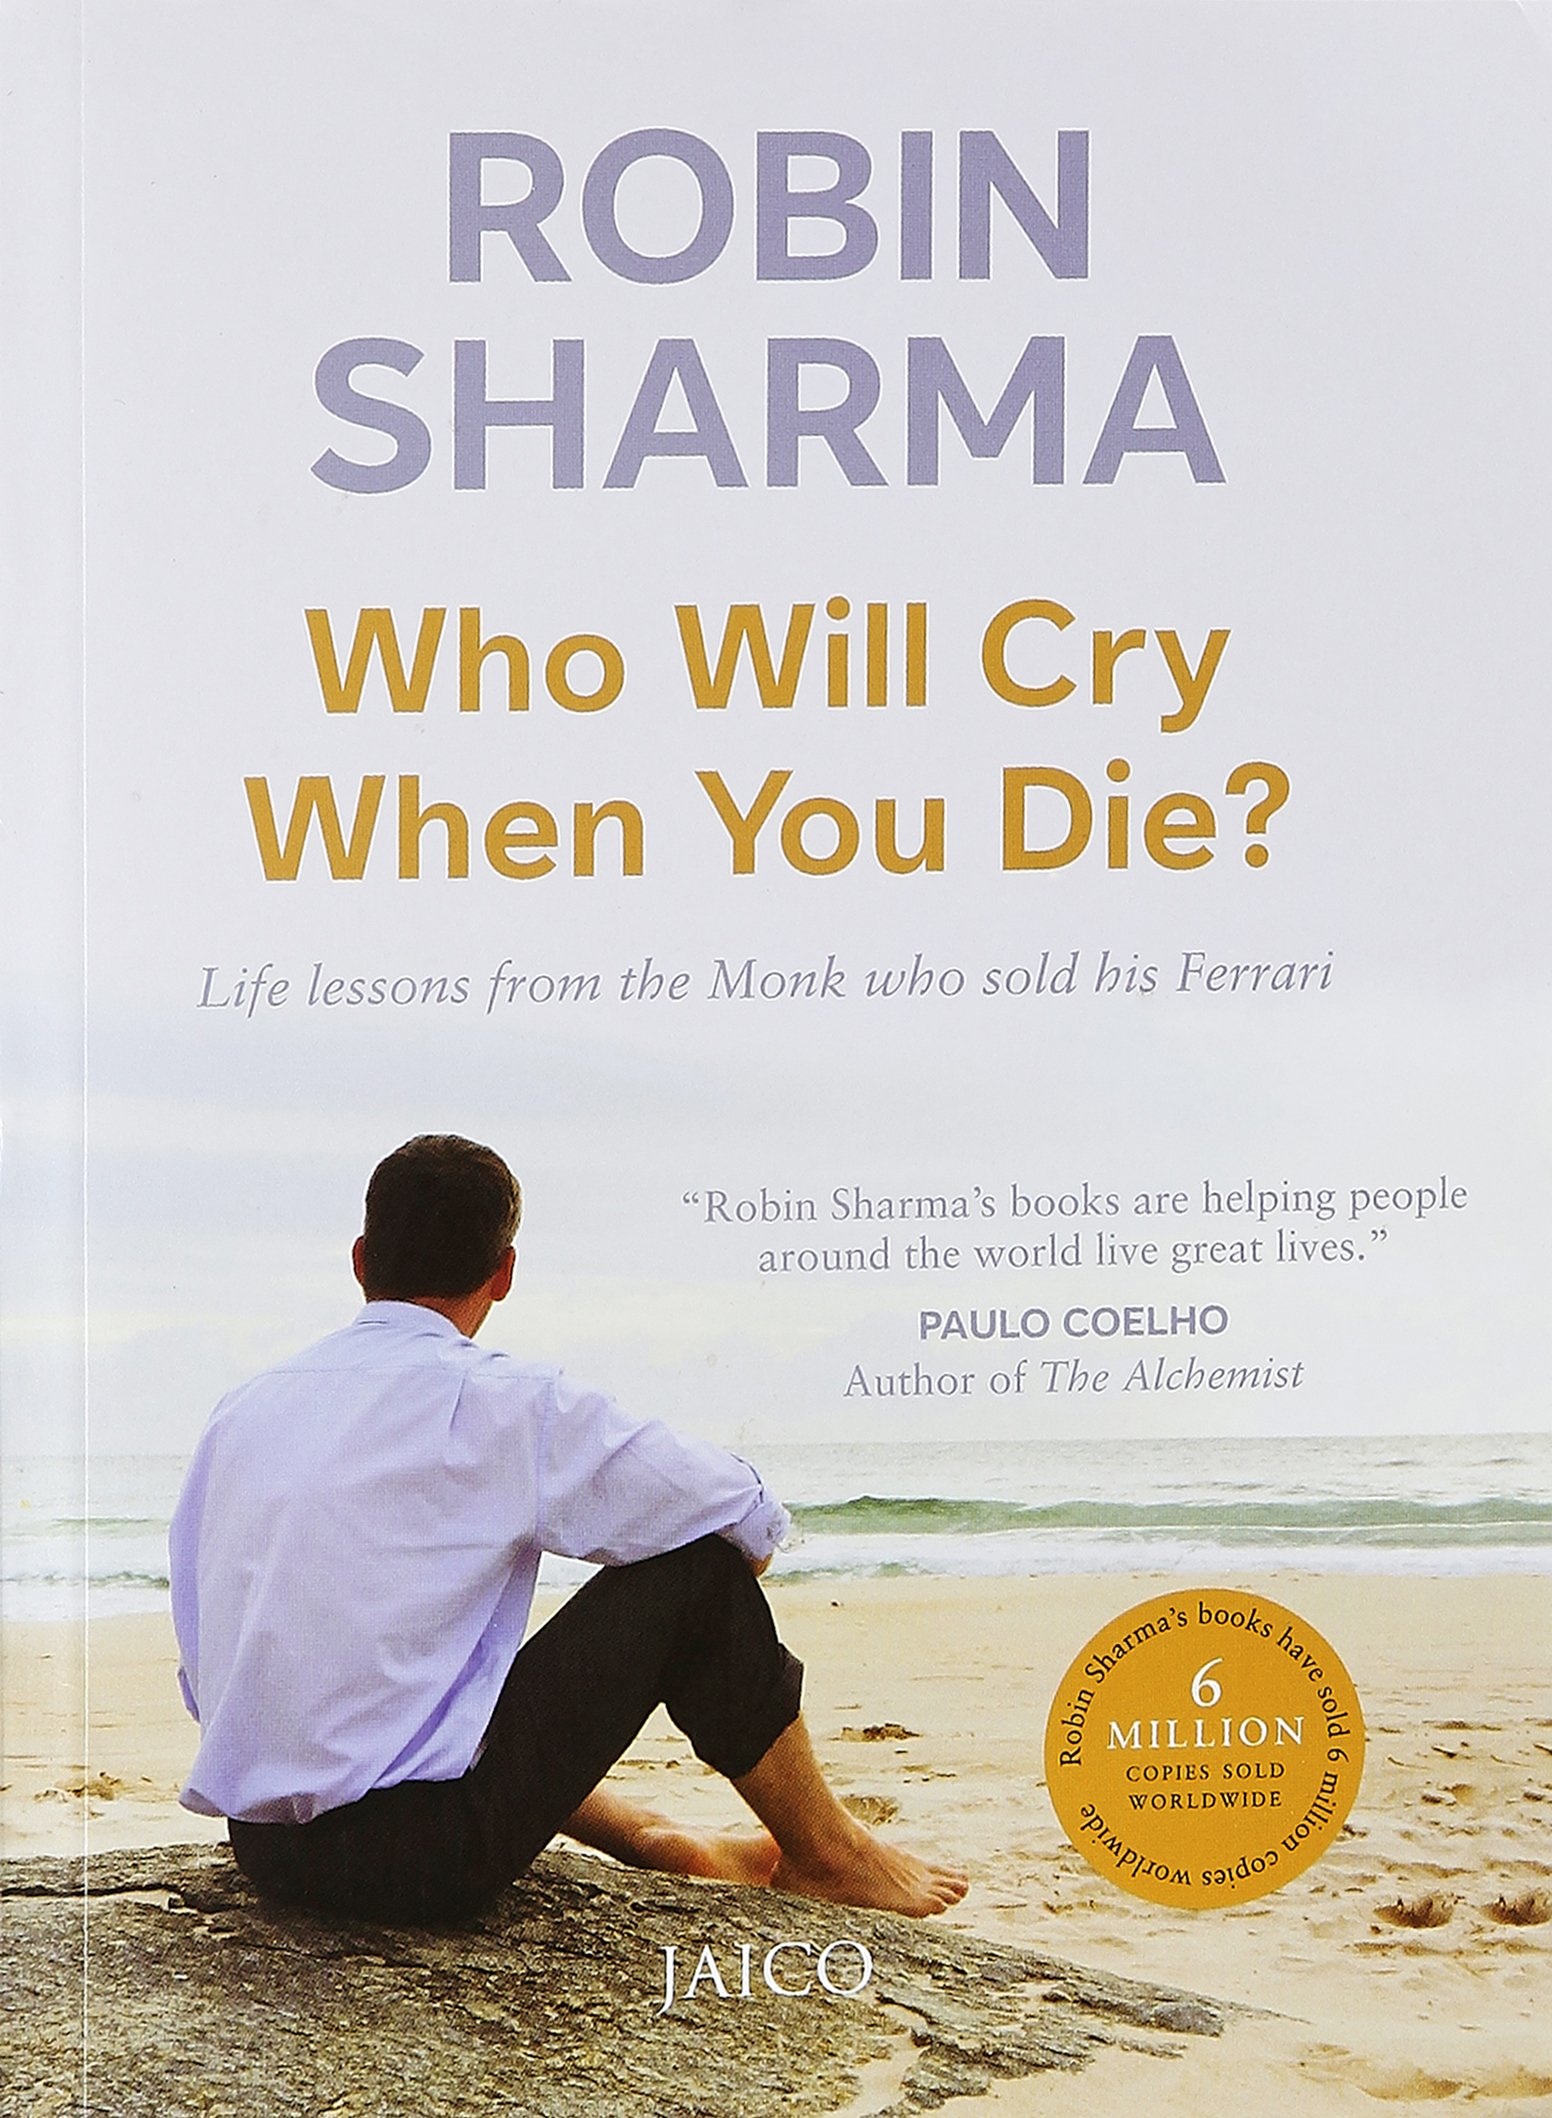 Book Online at Low Prices in India | Who Will Cry When You Die? Reviews &  Ratings - Amazon.in